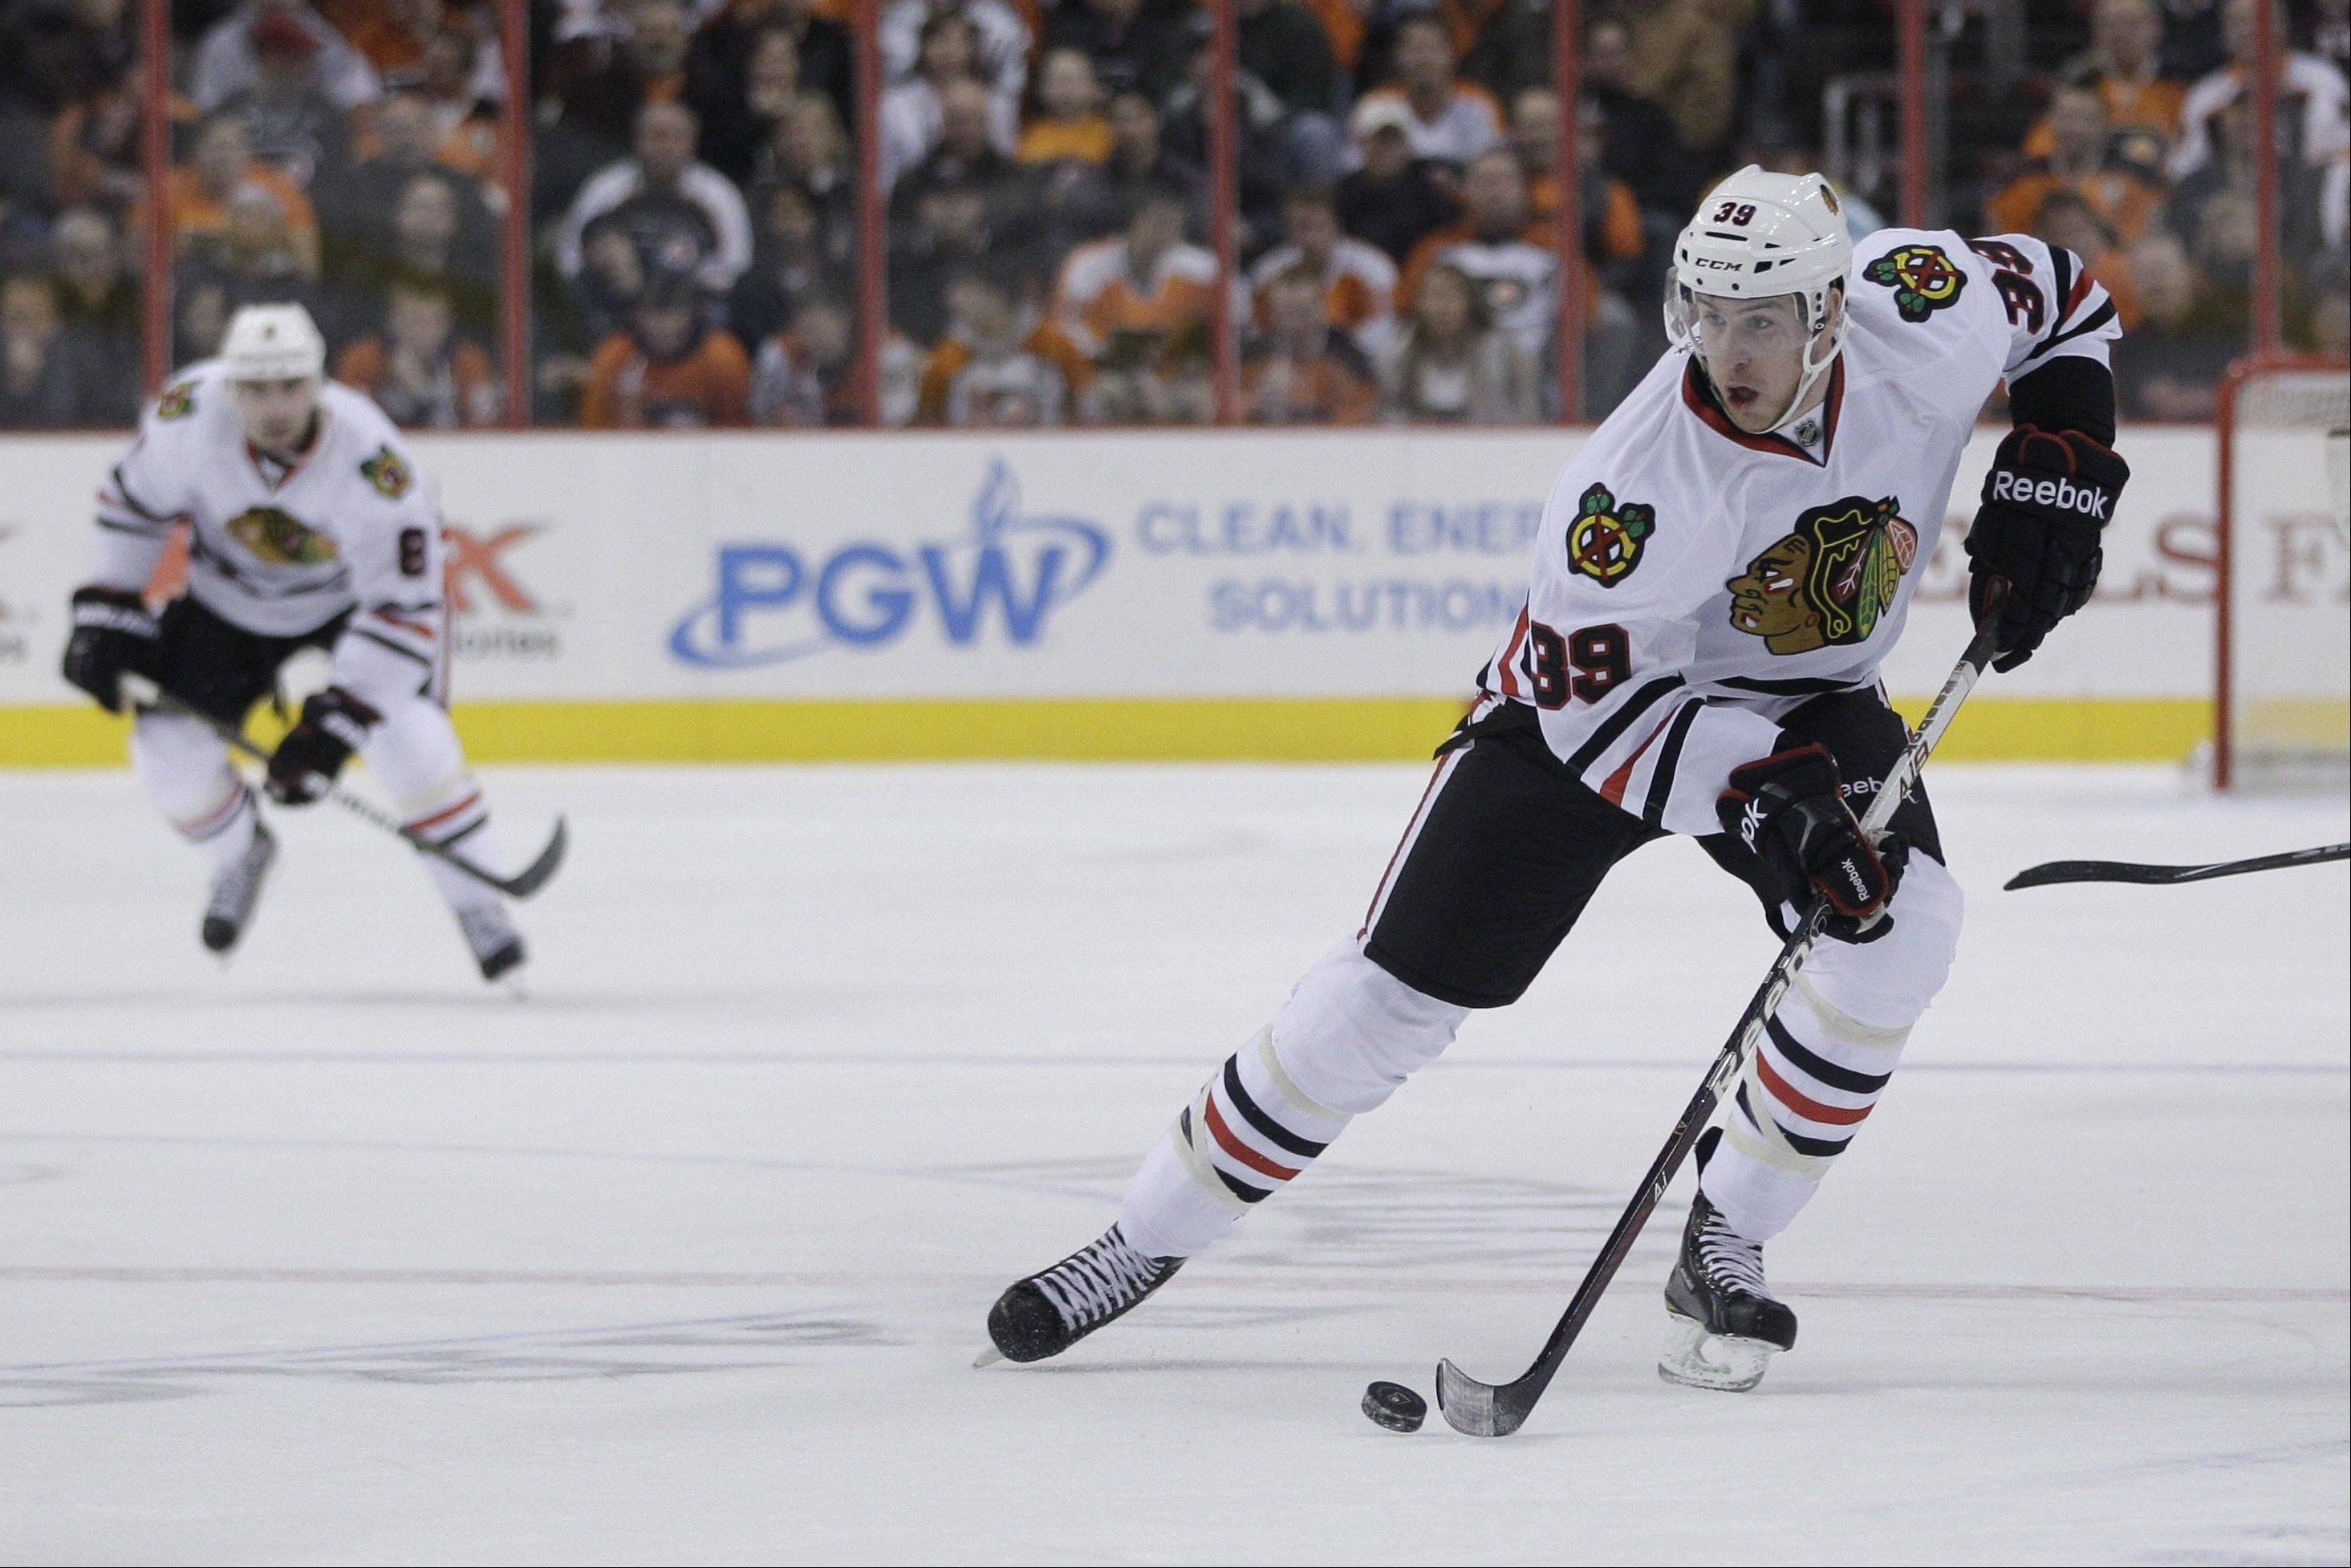 After being recalled from Rockford, Jimmy Hayes will get a chance to play on the line with Patrick Kane and Dave Bolland.